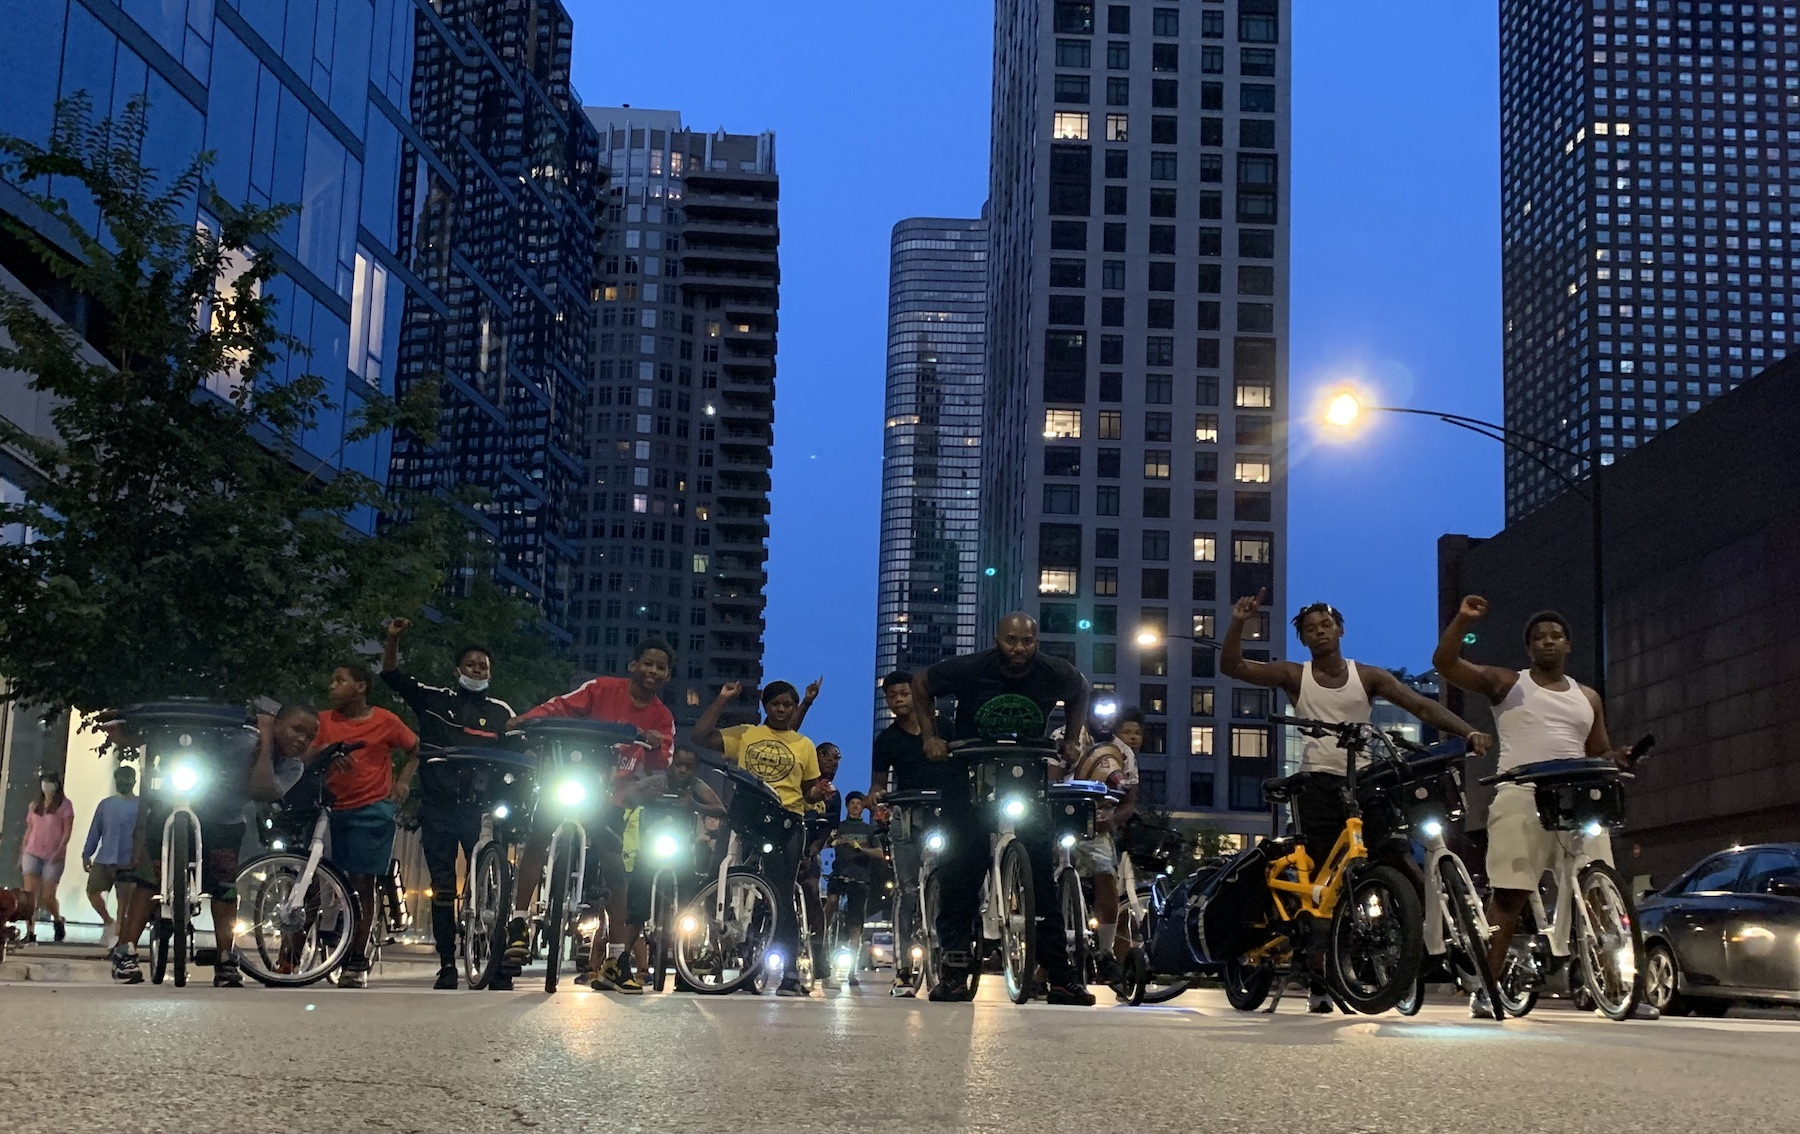 A community bike ride through North Lawndale aims to bring peace to the streets